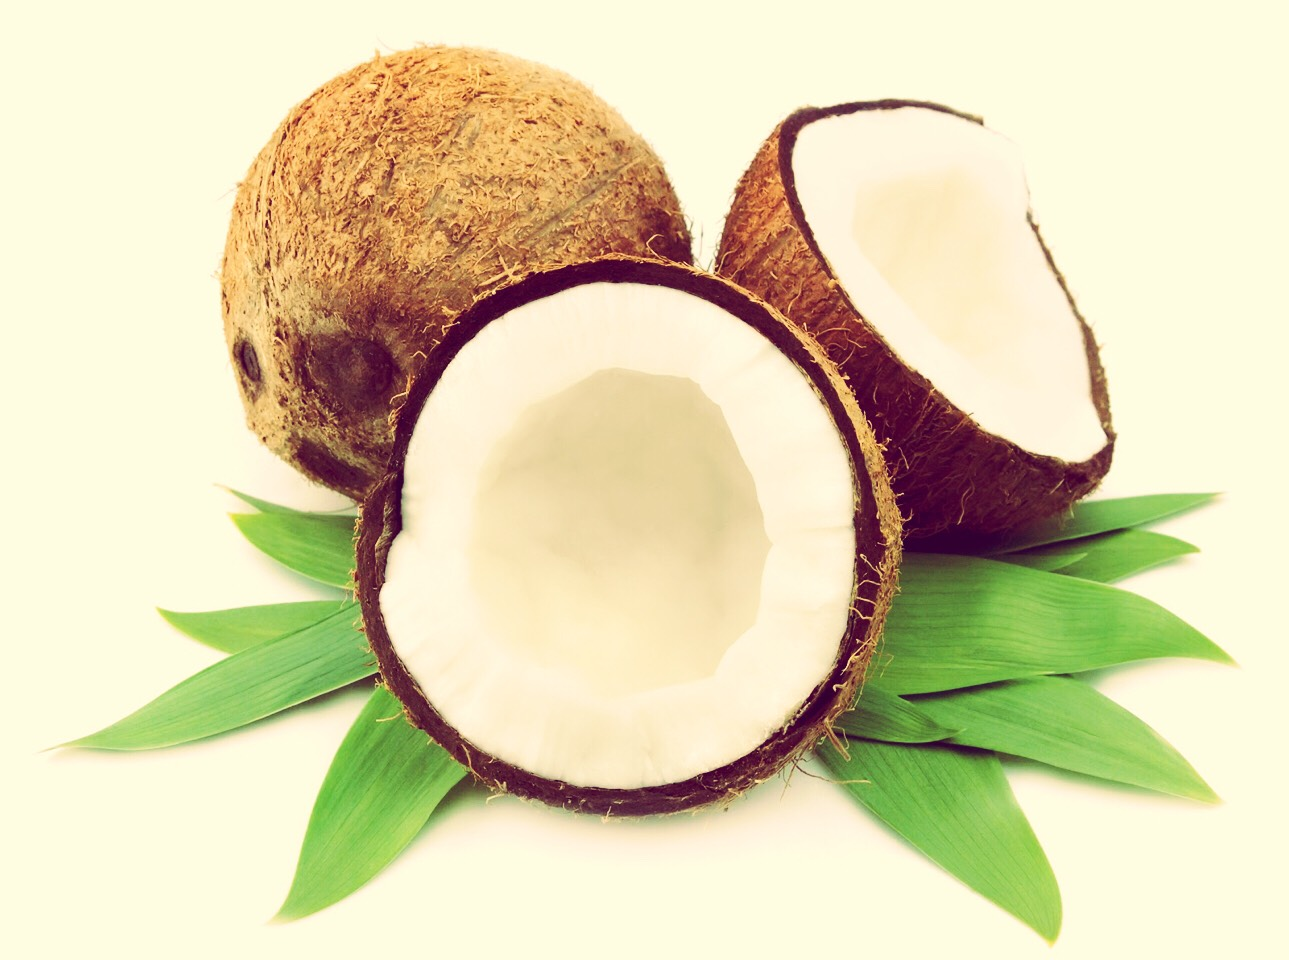 1/2 cup coconut oil 1/2 cup brown sugar 1/2 teaspoon vanilla Mix ingredients together. Rub on skin while in the shower, massage, and rinse.